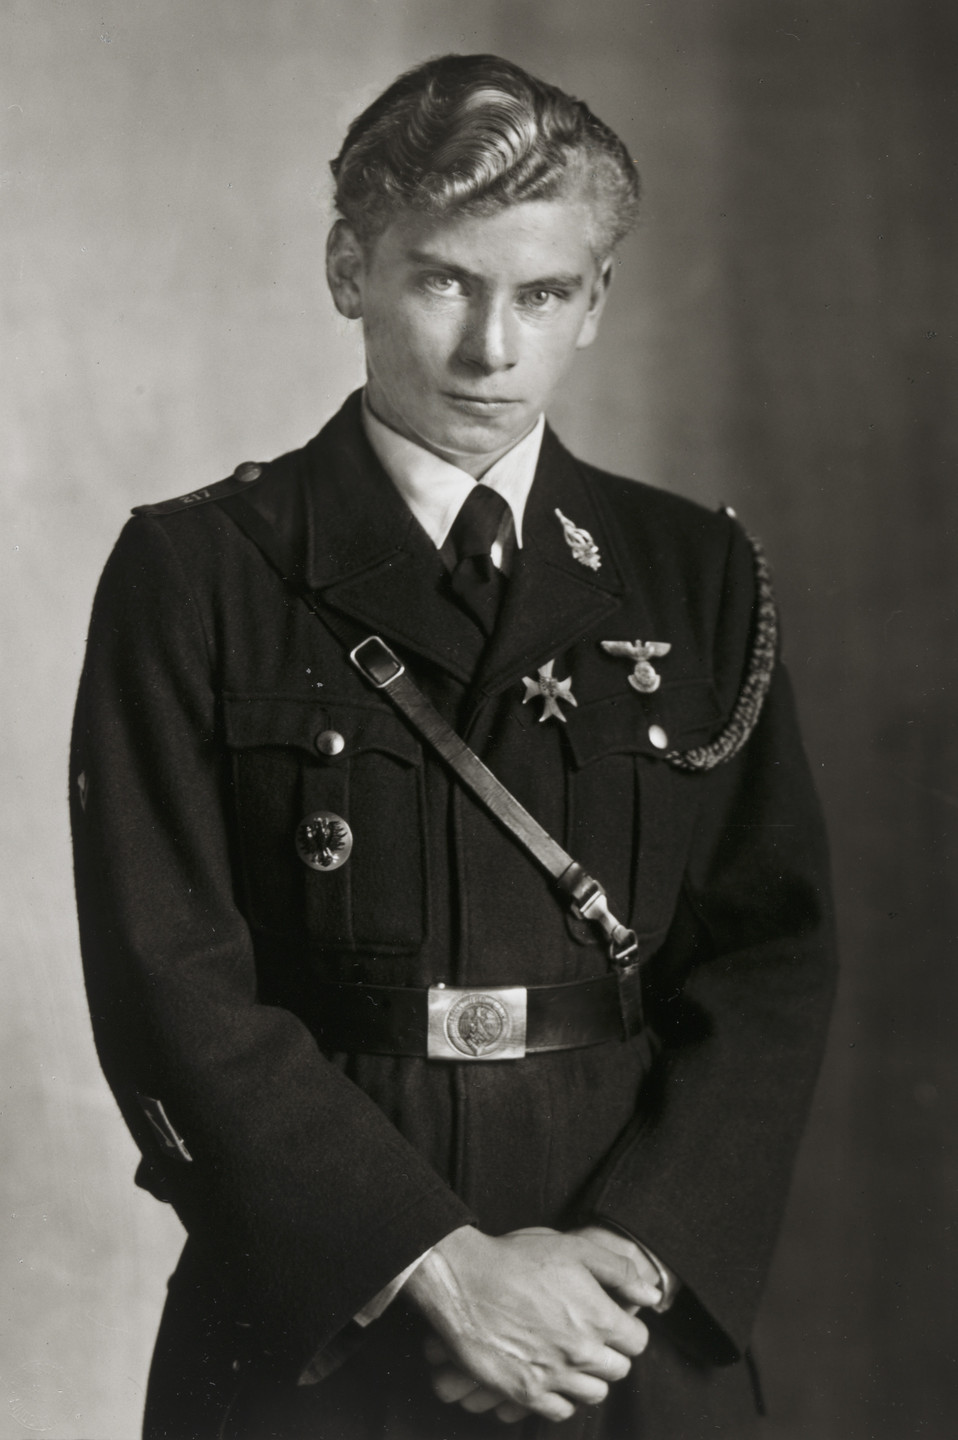 August Sander. Young National Socialist. 1941